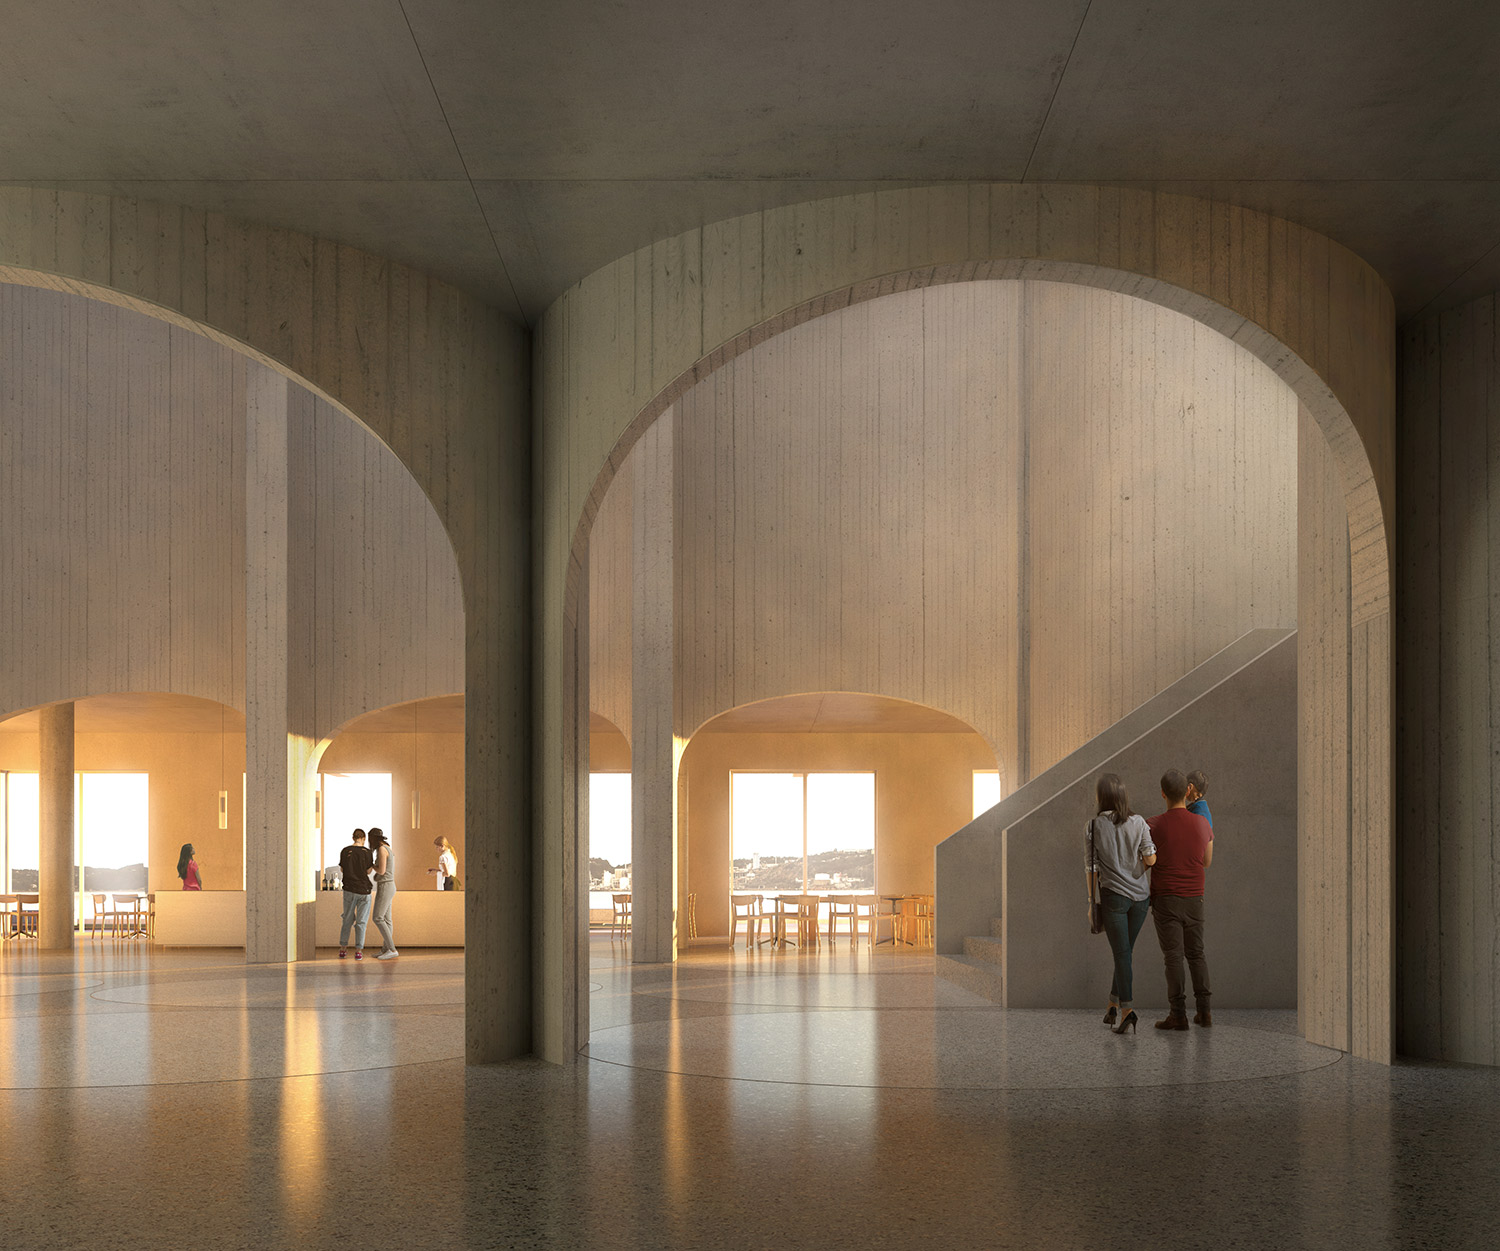 RVA has been awarded the second prize in the competition for the Art Museum and Cultural Quarter in Kristiansand, Norway